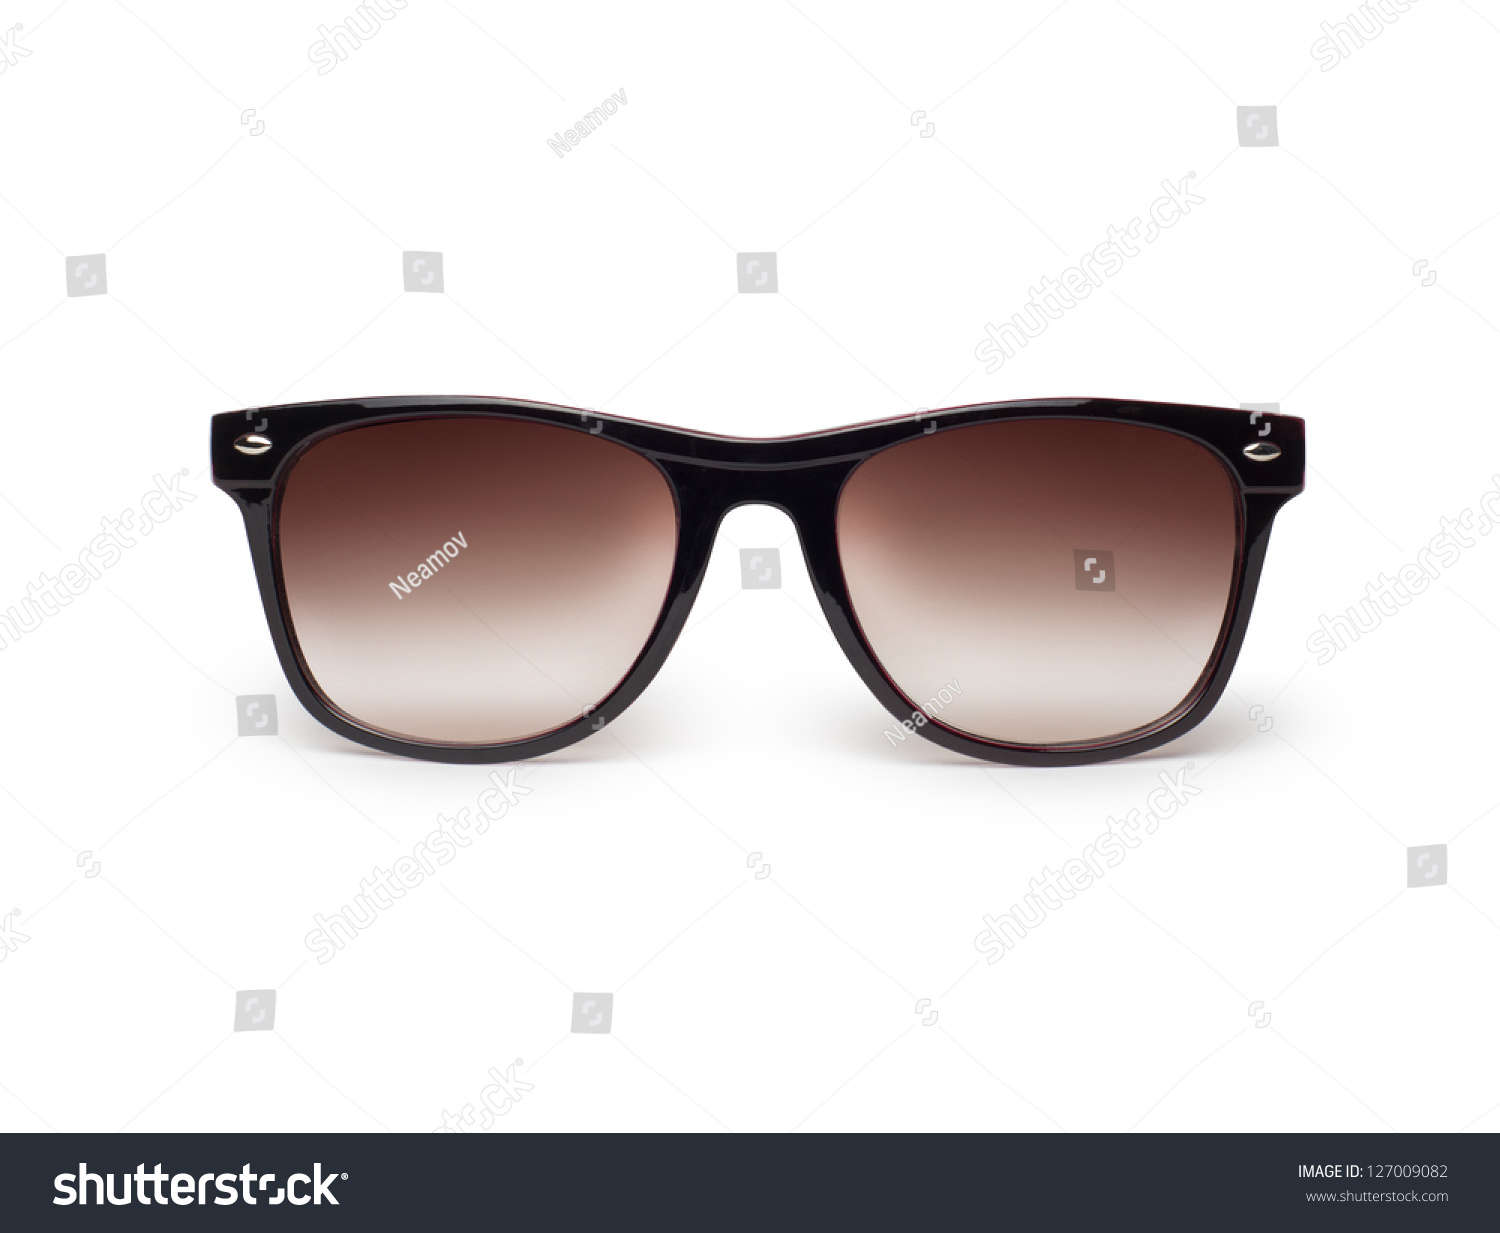 Sunglasses Isolated Against White Background Stock Photo